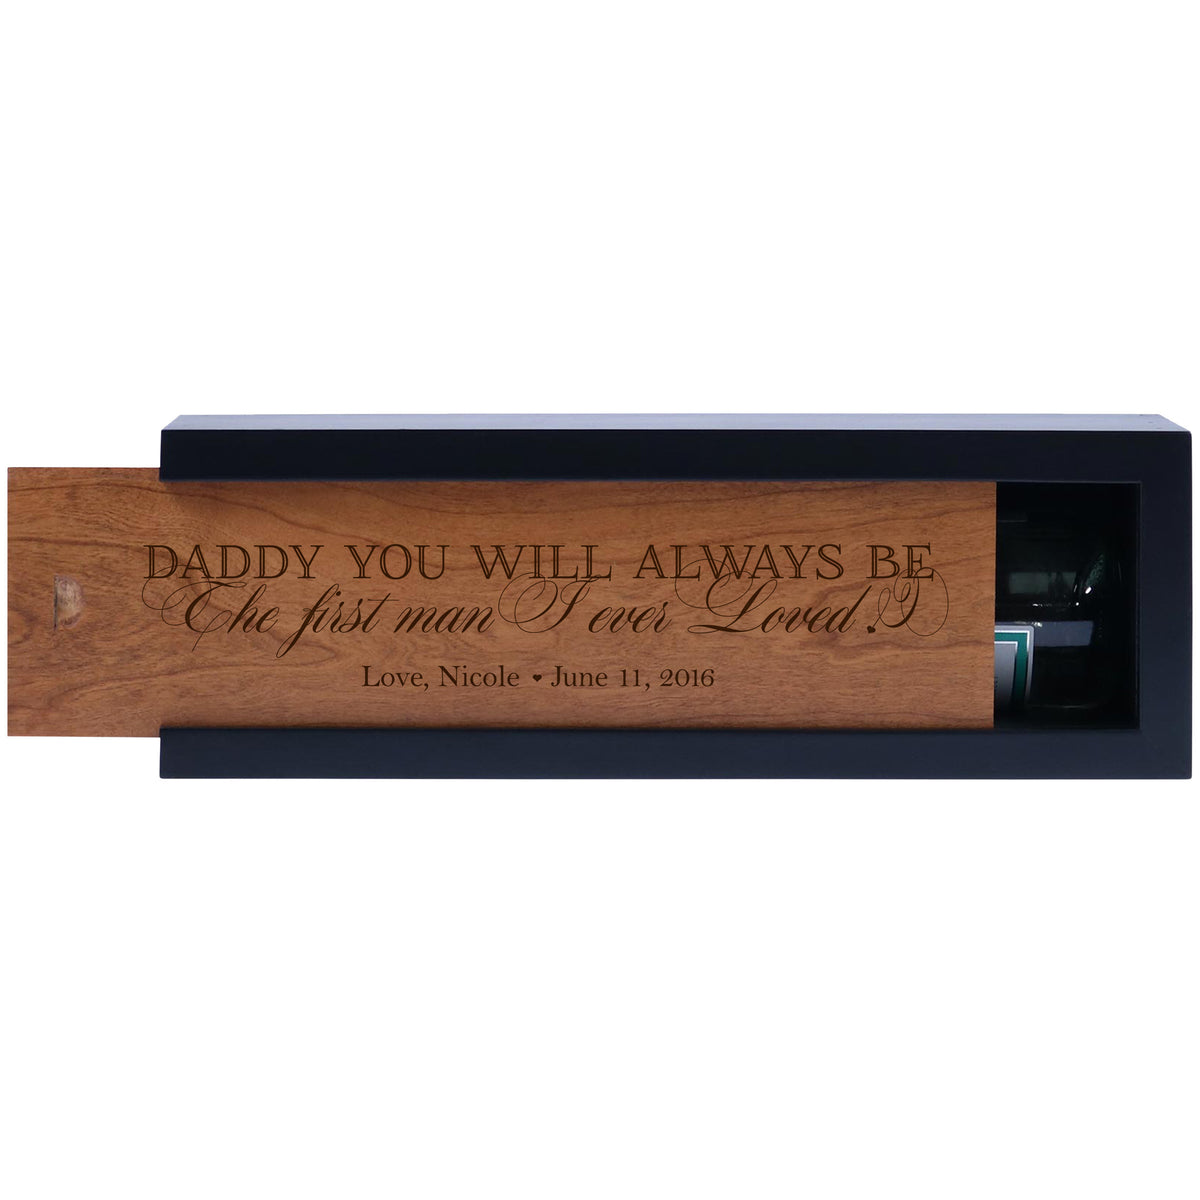 Daddy You Will Always Be